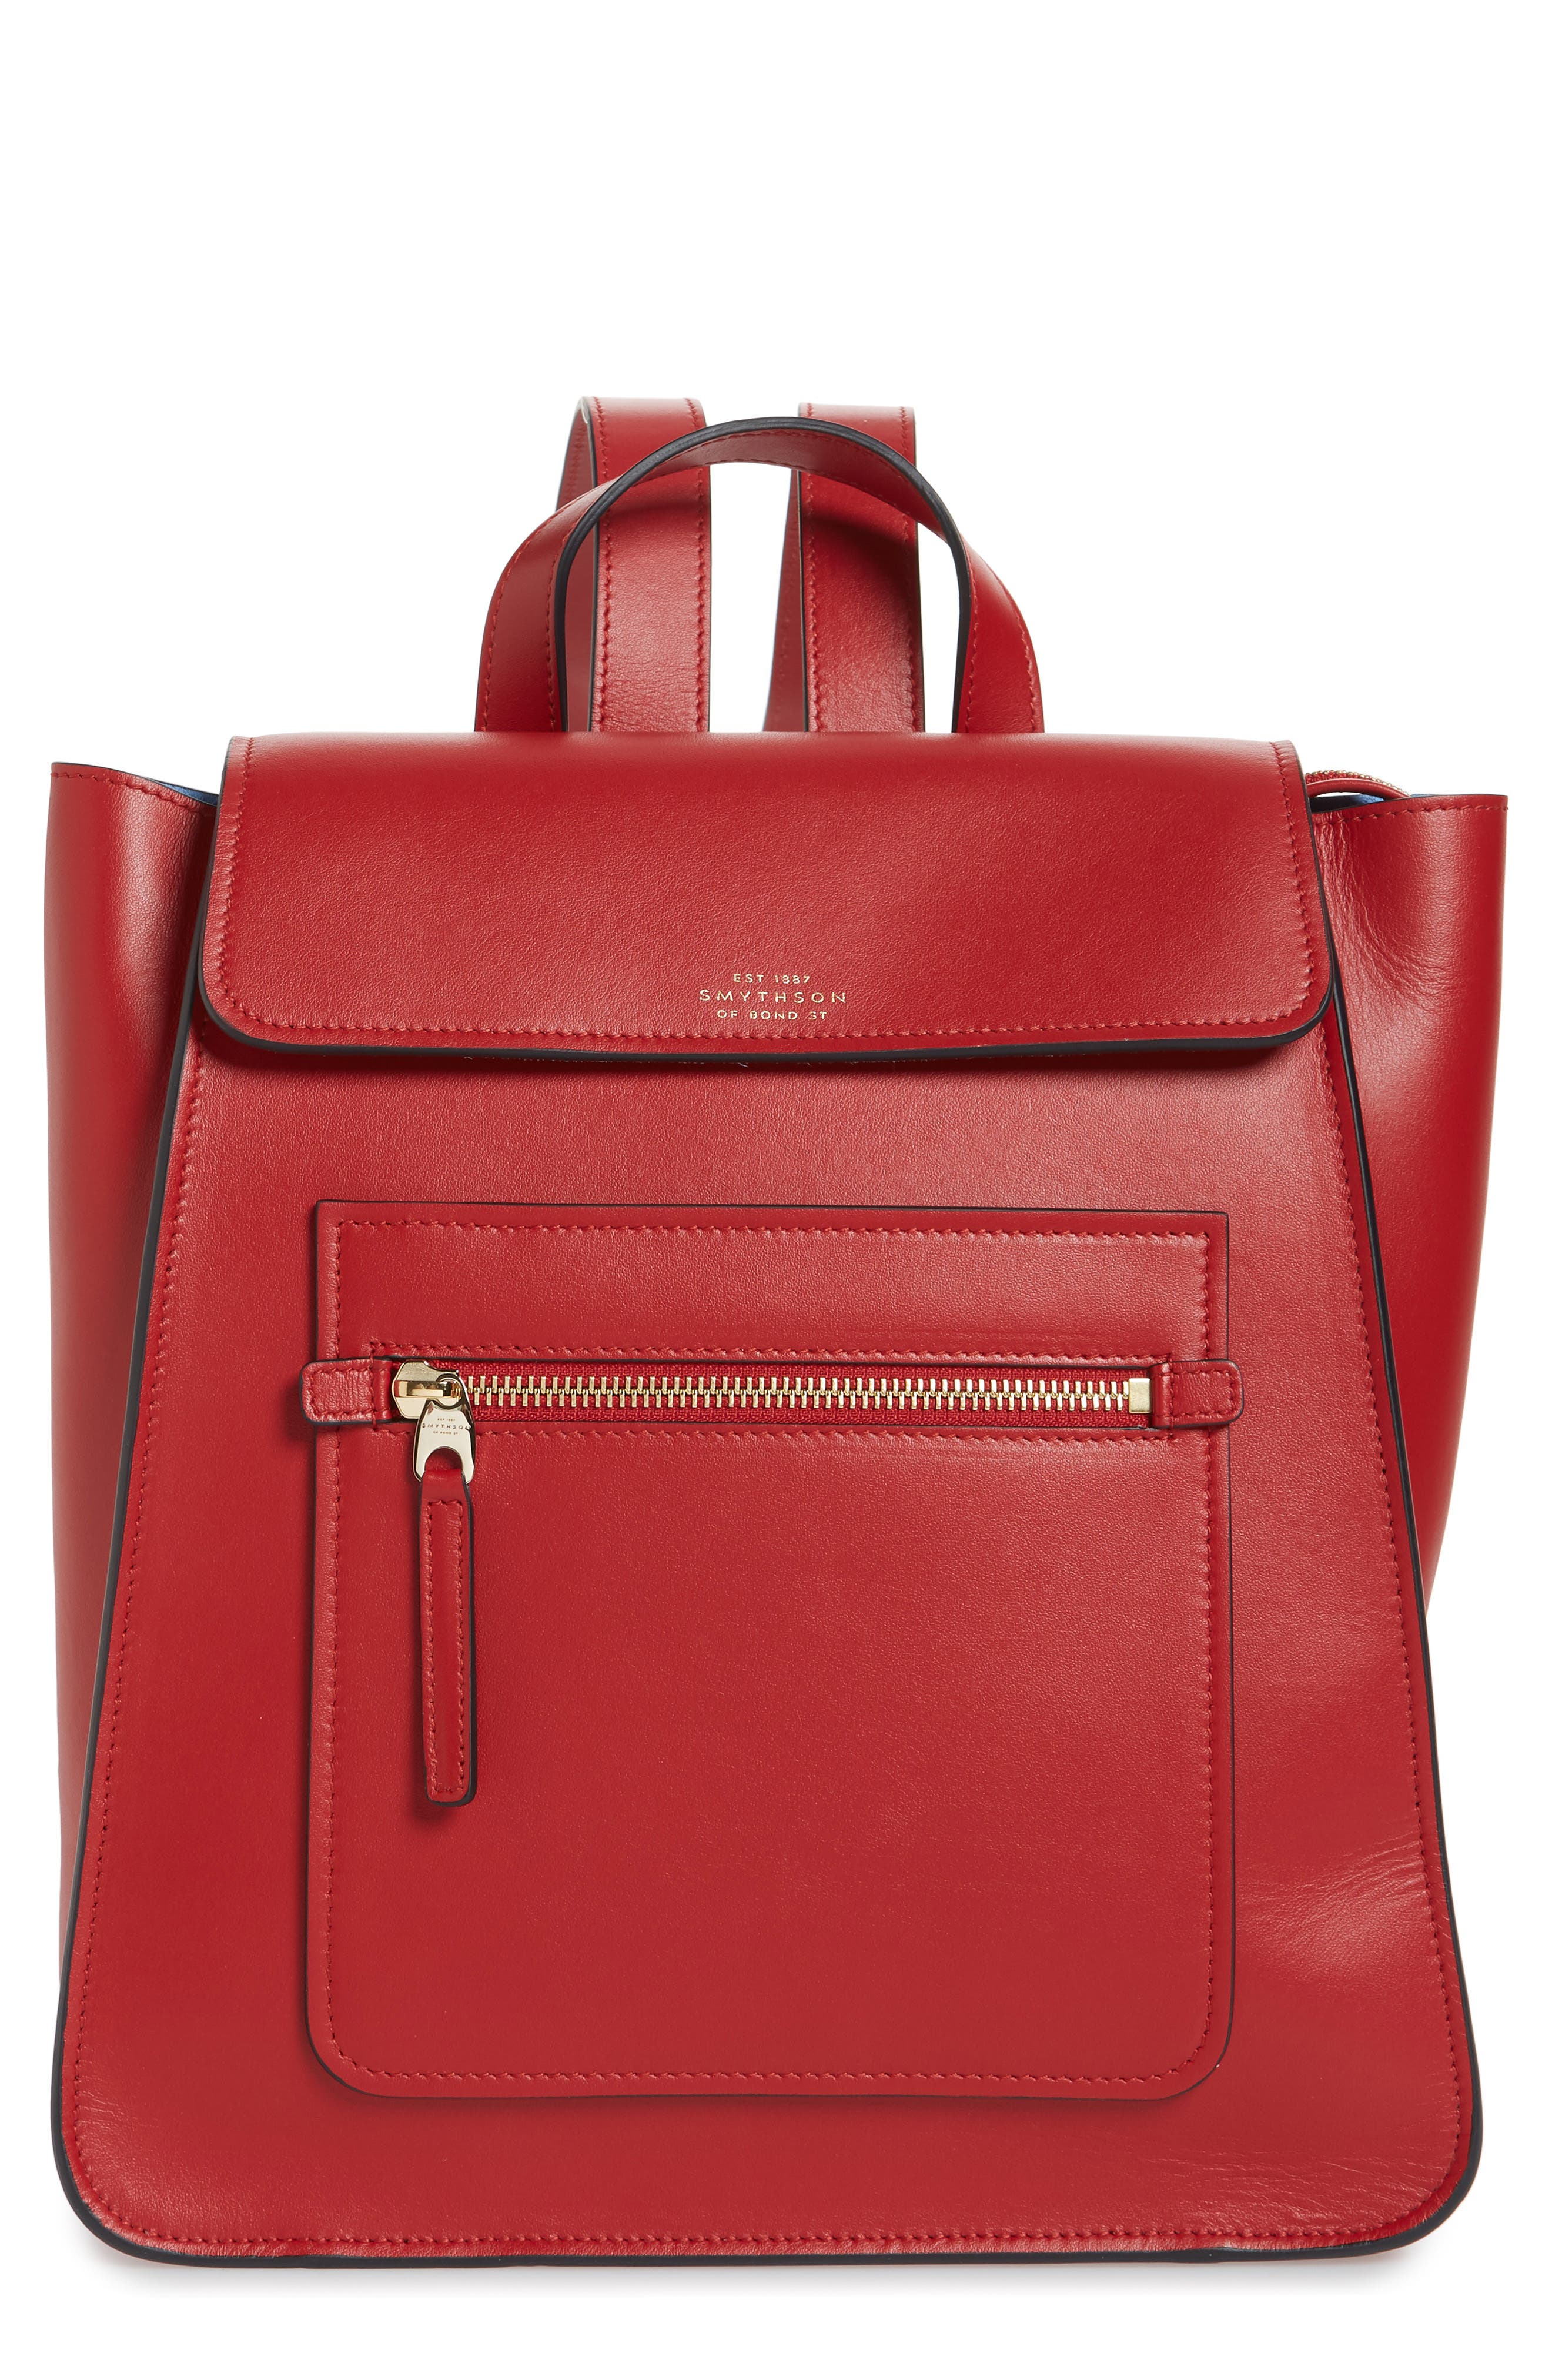 HERO SMALL LEATHER BACKPACK - RED